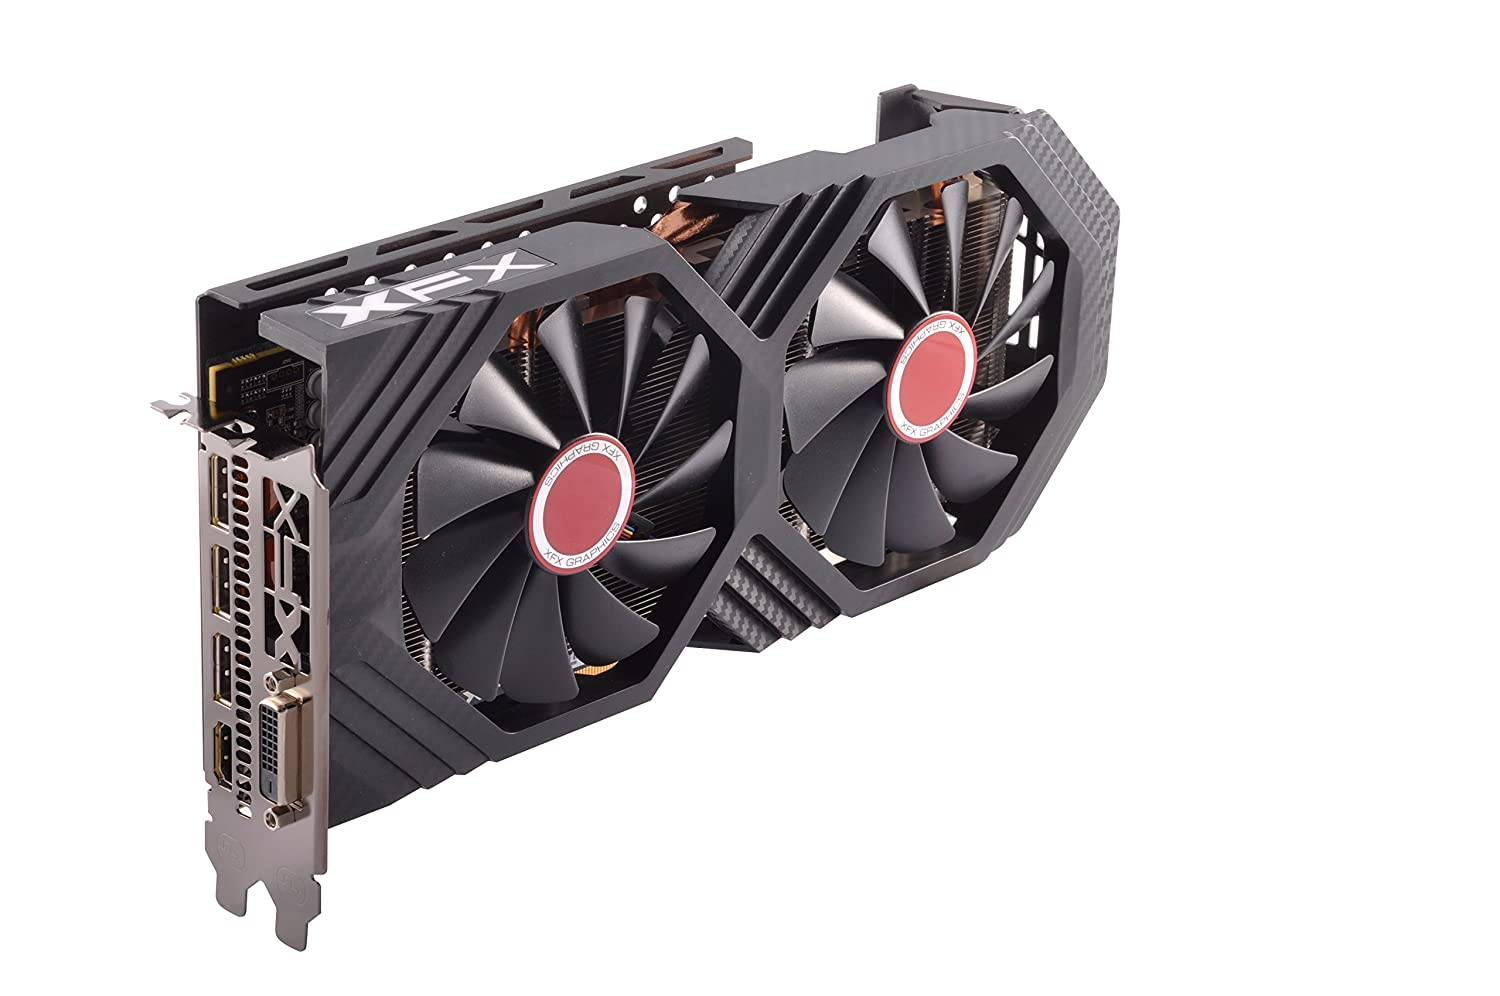 XFX Radeon RX 580 GTS Black Edition 1405MHz OC+, 8gb 256bit GDDR5, DX12 VR Ready, Double Dissipation, Dual BIOS, 3xDP HDMI DVI, PCI-E AMD Graphics Card (RX-580P828D6)